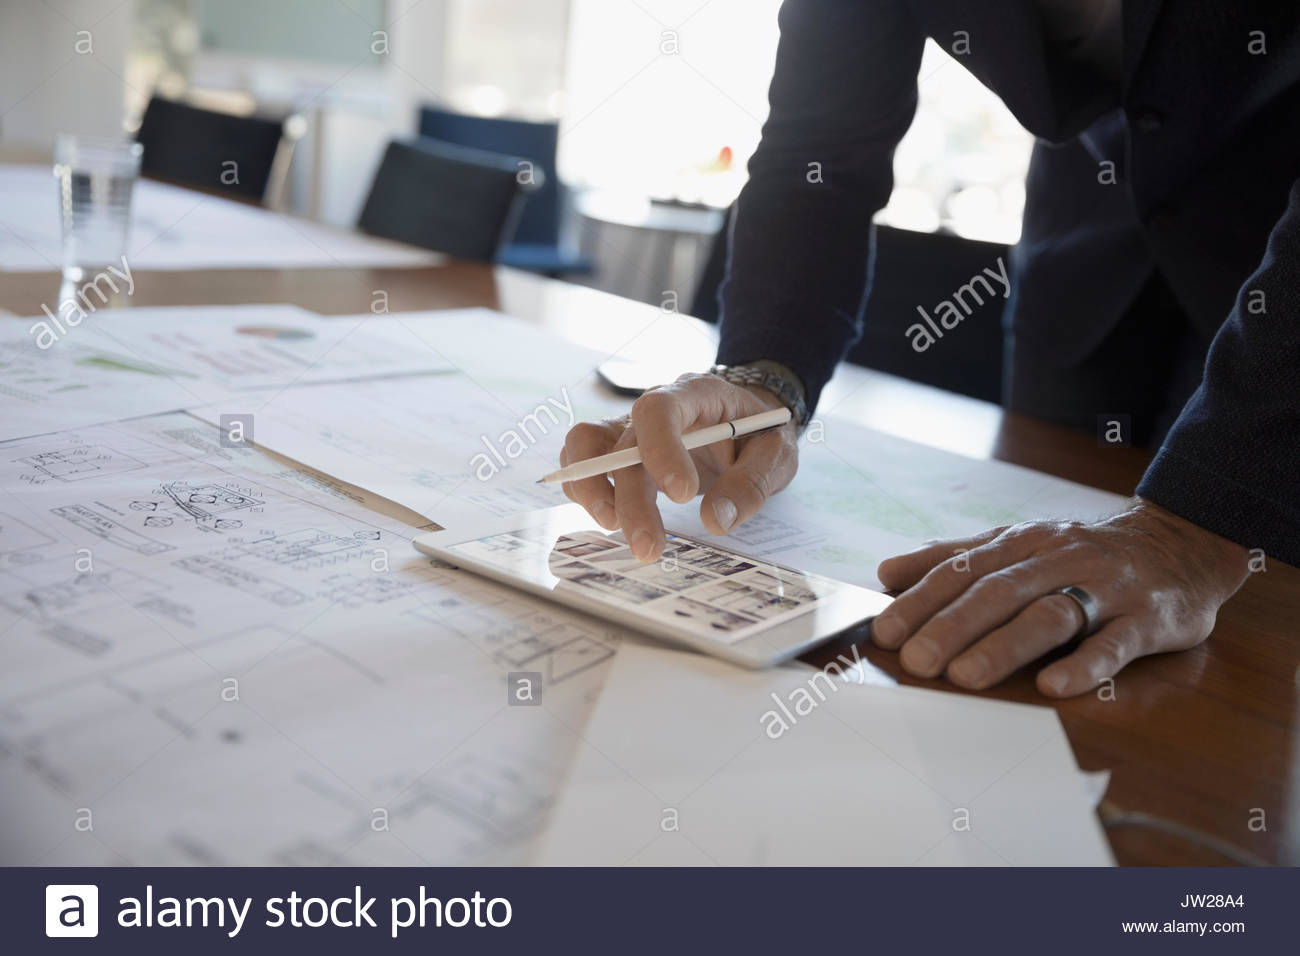 Businessman reviewing, editing paper and digital blueprints on digital tablet in conference room - Stock Image